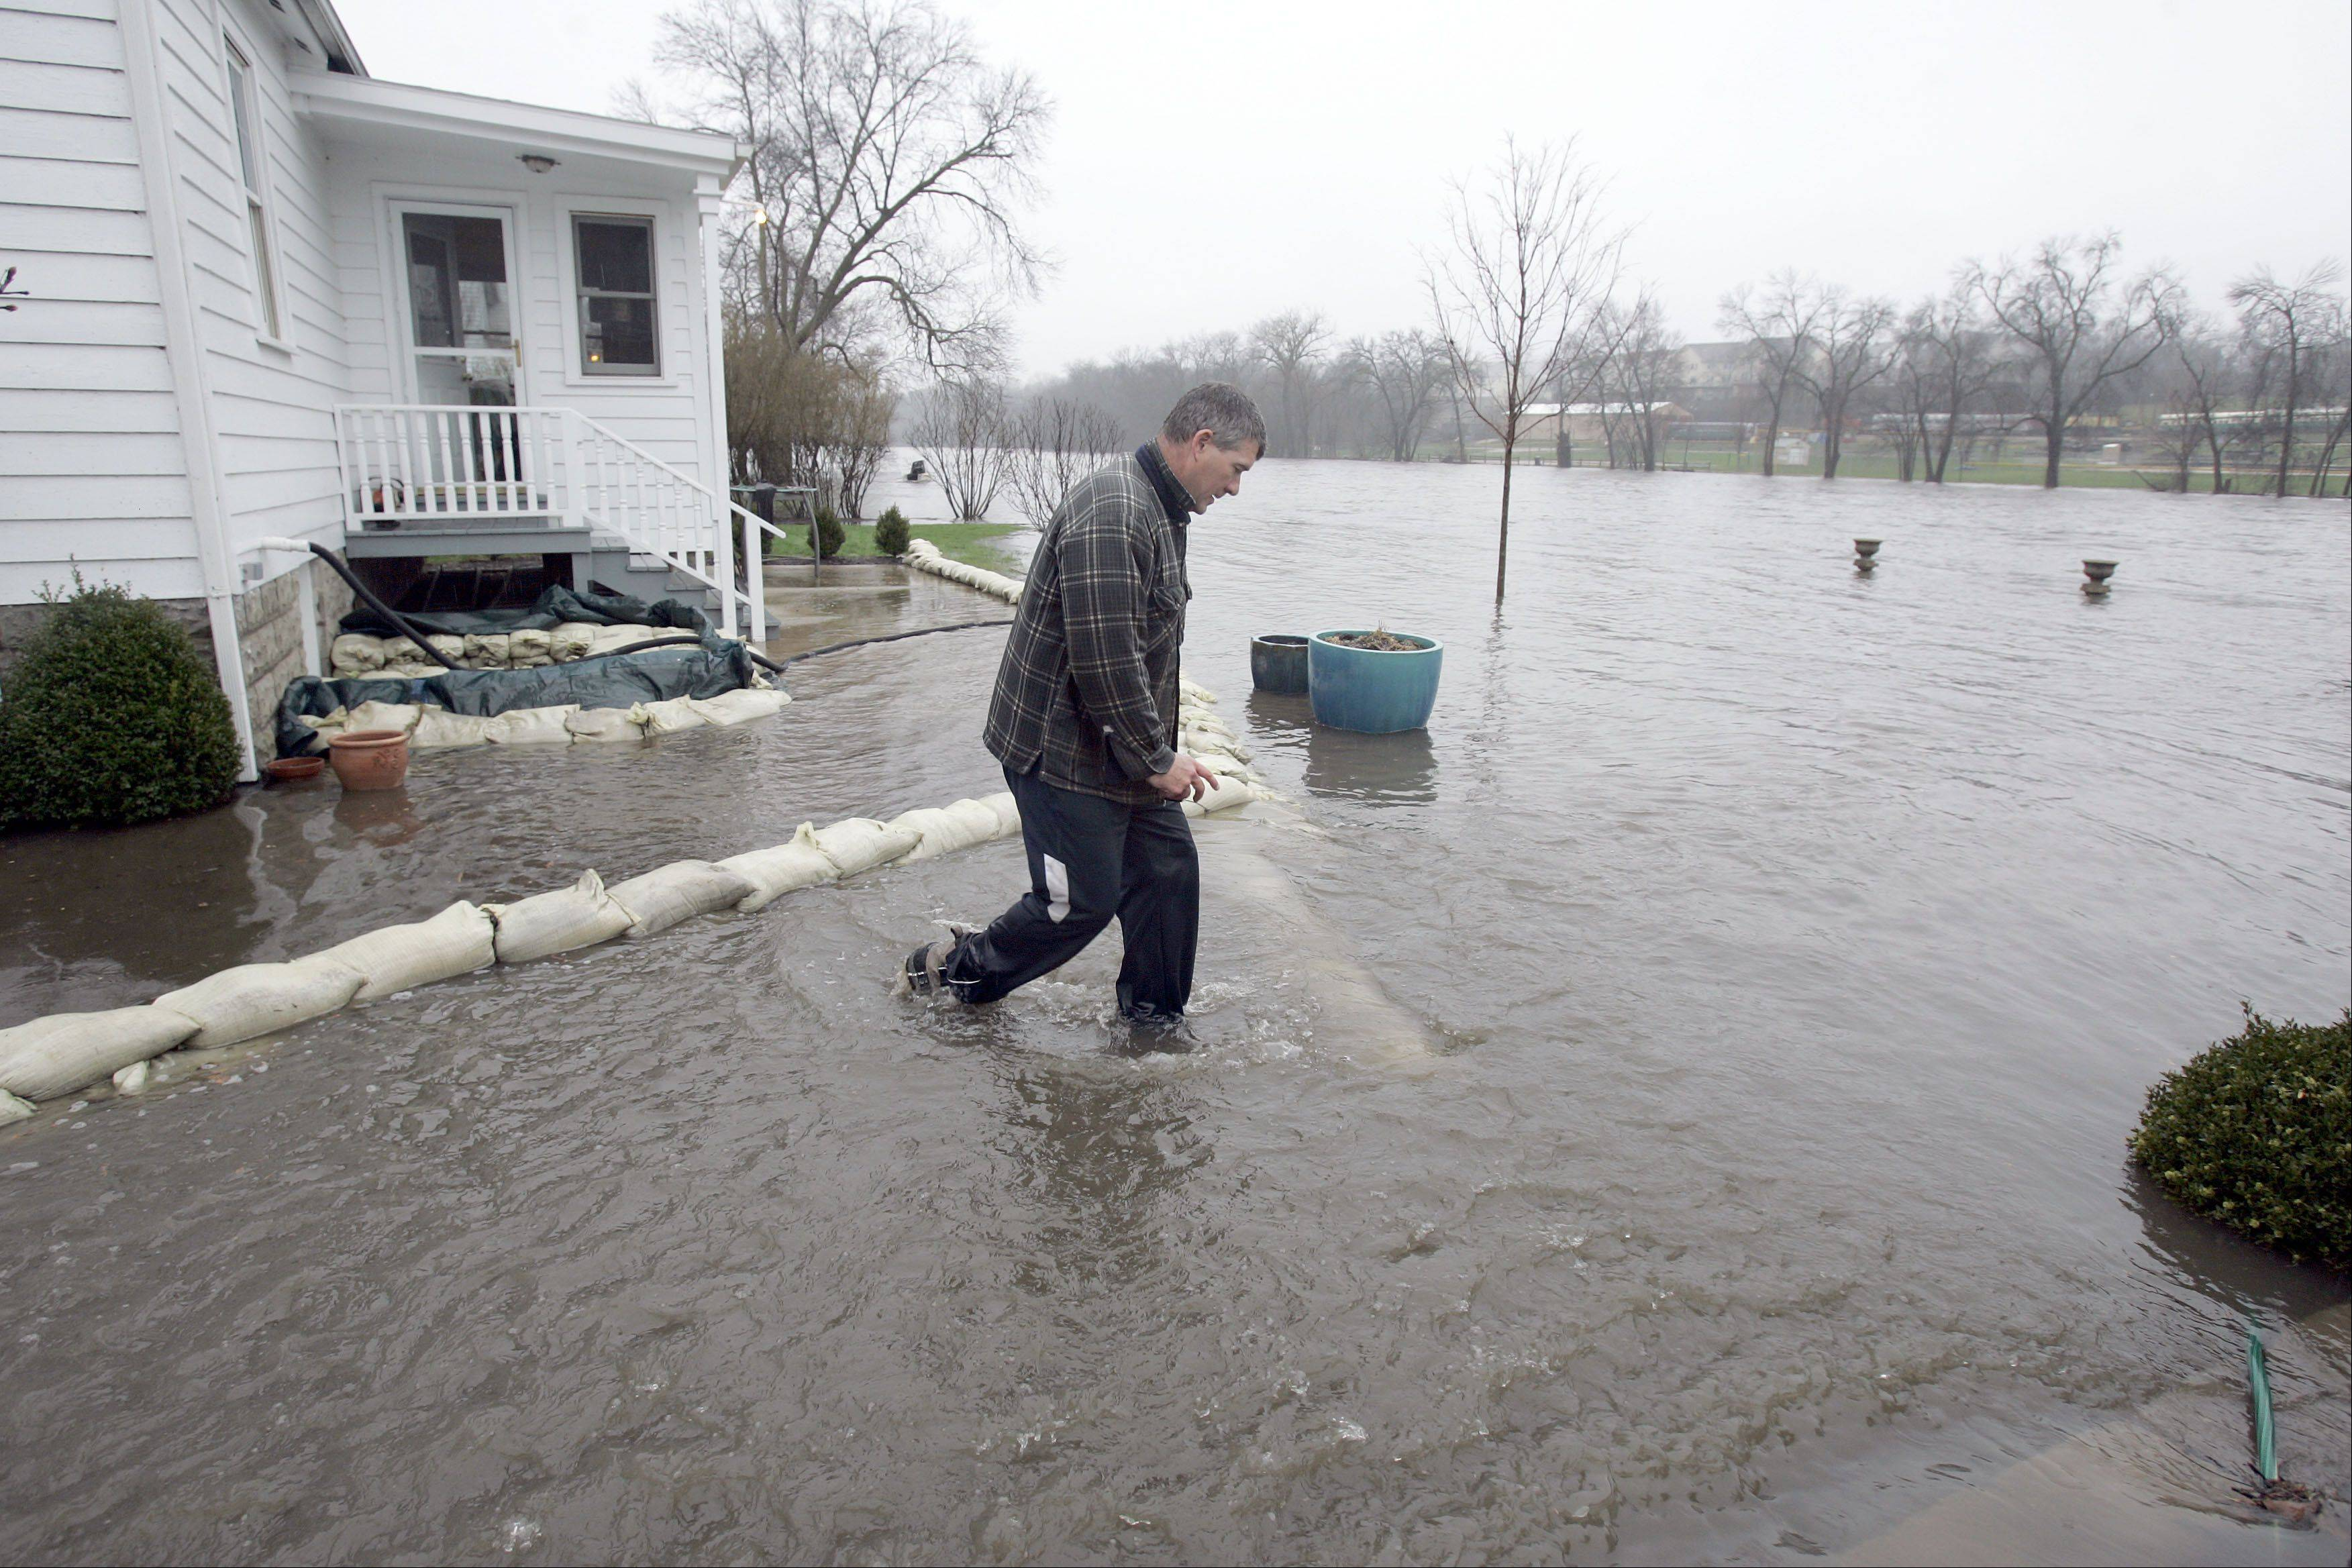 "Paul Gogo of South Elgin returns for another sandbag after flooding two months ago on the Fox River in South Elgin. ""This is just brutal, it's never been like this"" said Gogo, who had been up since the middle of the night April 18 working to protect his home on South River Street."